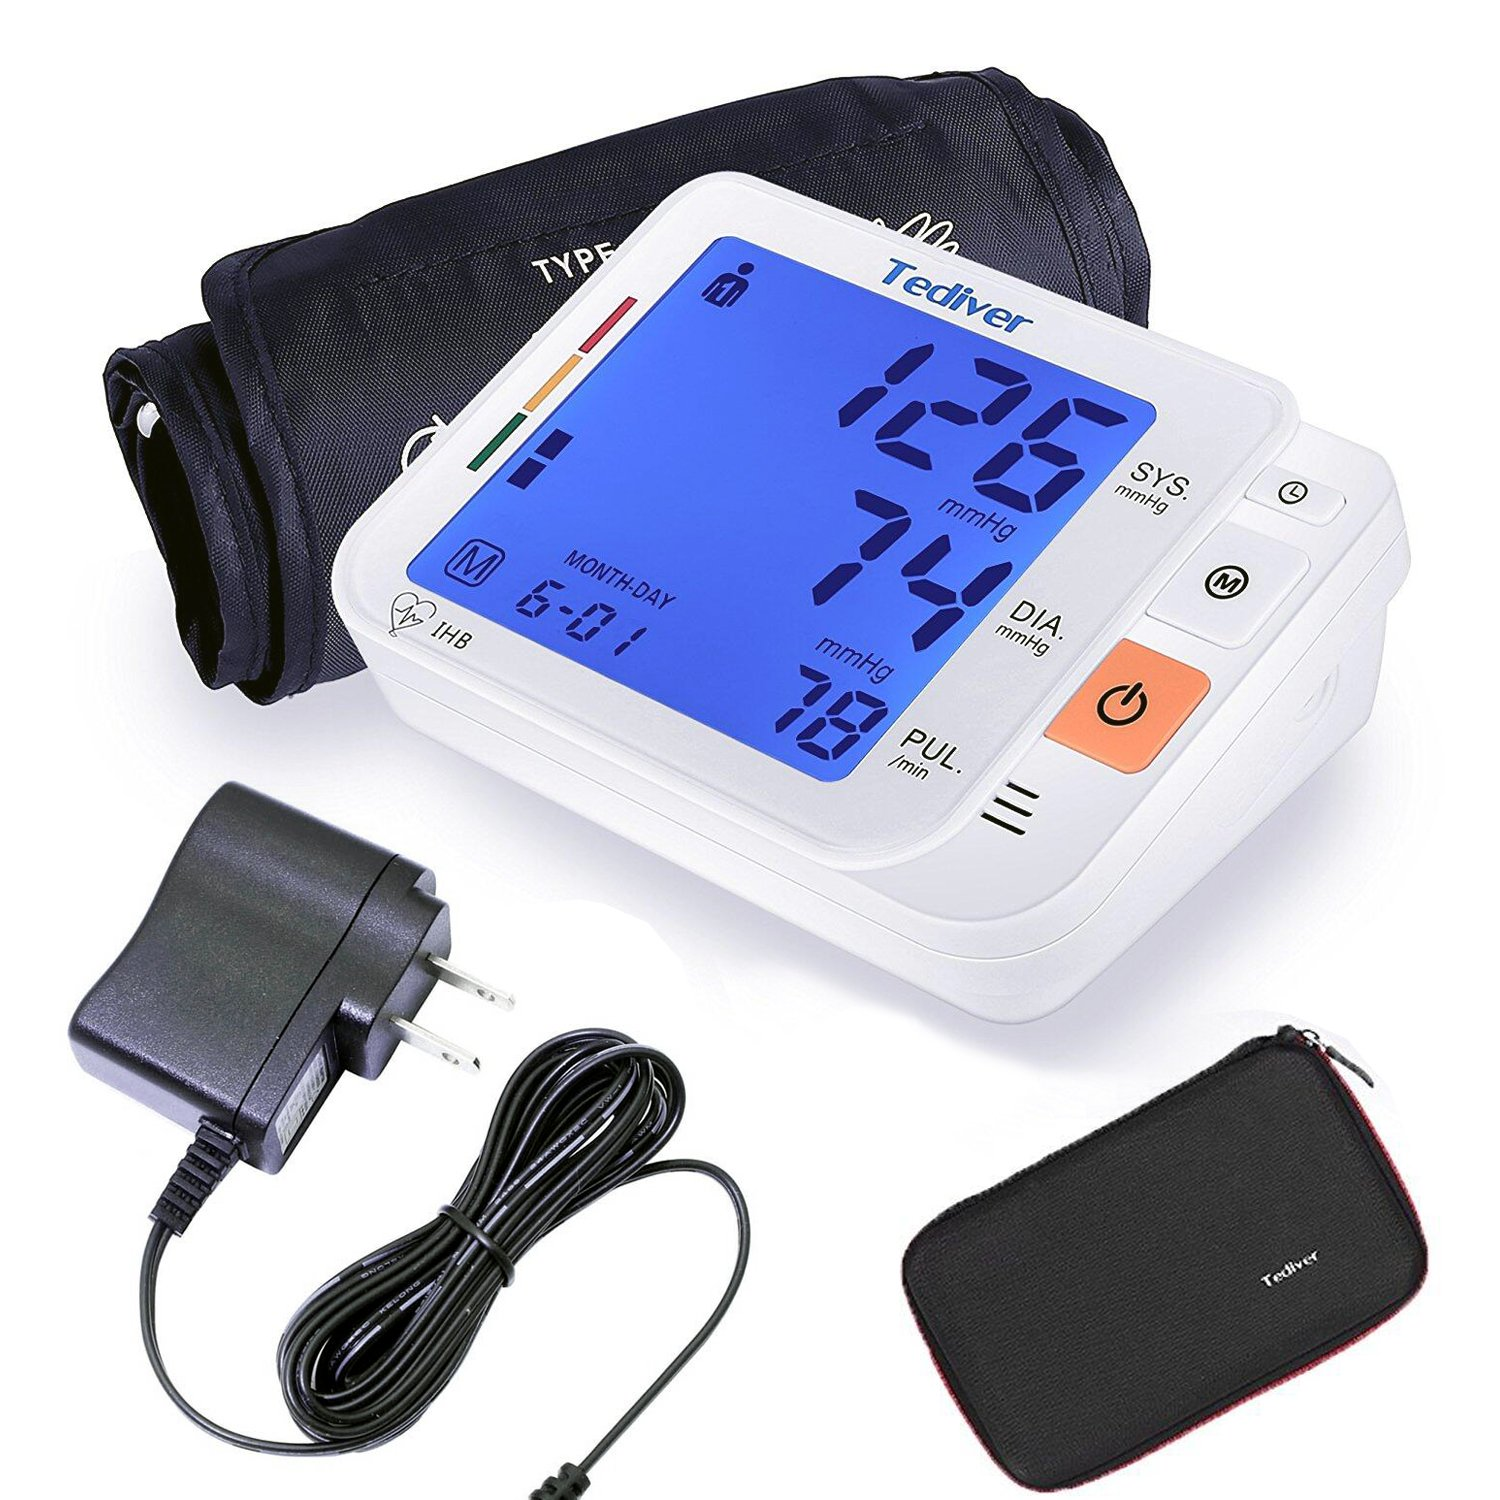 Tediver Digital Blood Pressure Monitor, Large Cuff 22-42cm - Automatic Upper Arm Blood Pressure Cuff Sets with Adapter and Device Case, Backlight LCD screen, 2 Year Warranty